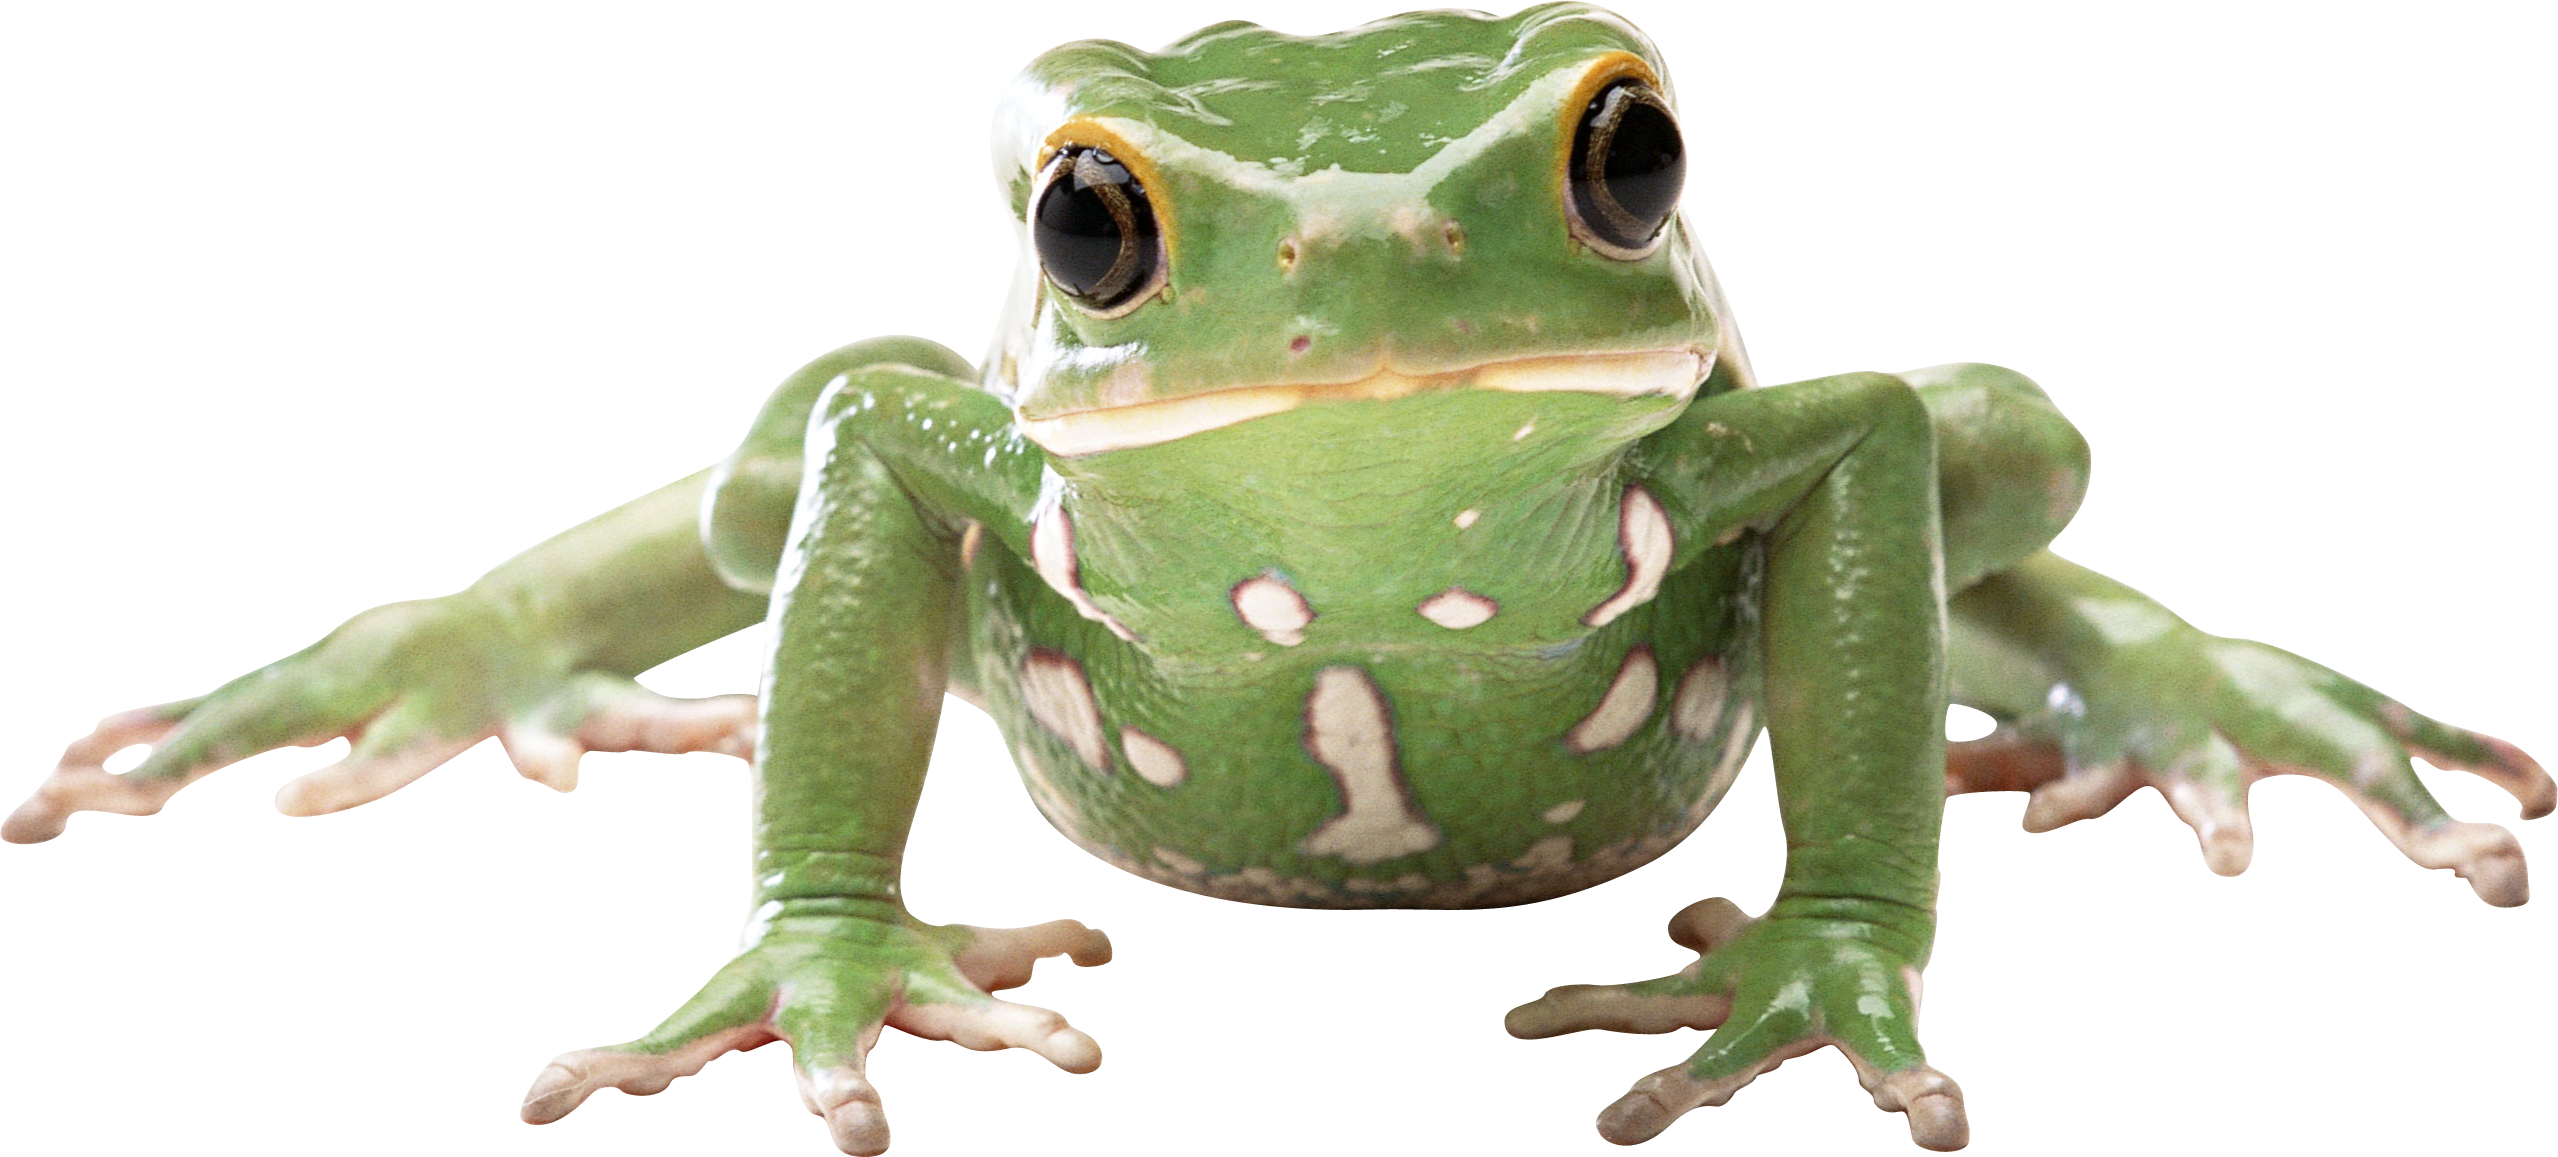 Frog #1271935 - PNG Frogs Free